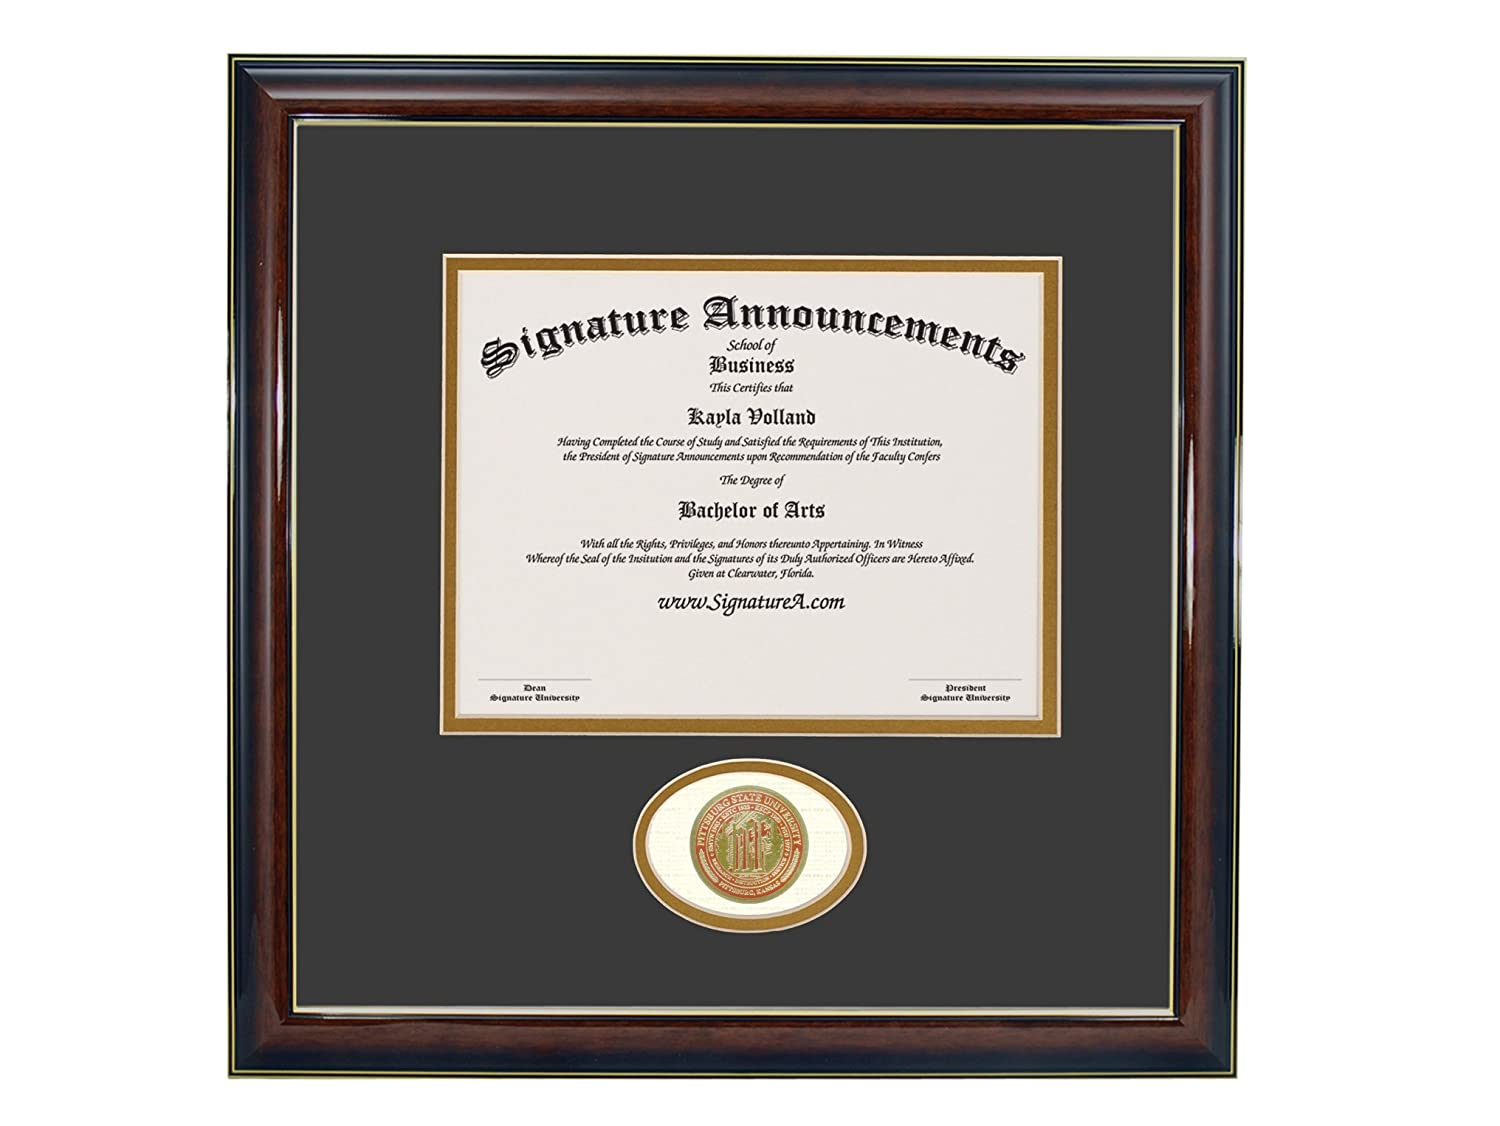 Signature Announcements Pittsburg-State-University Undergraduate Professional//Doctor Sculpted Foil Seal Graduation Diploma Frame 16 x 16 Gold Accent Gloss Mahogany